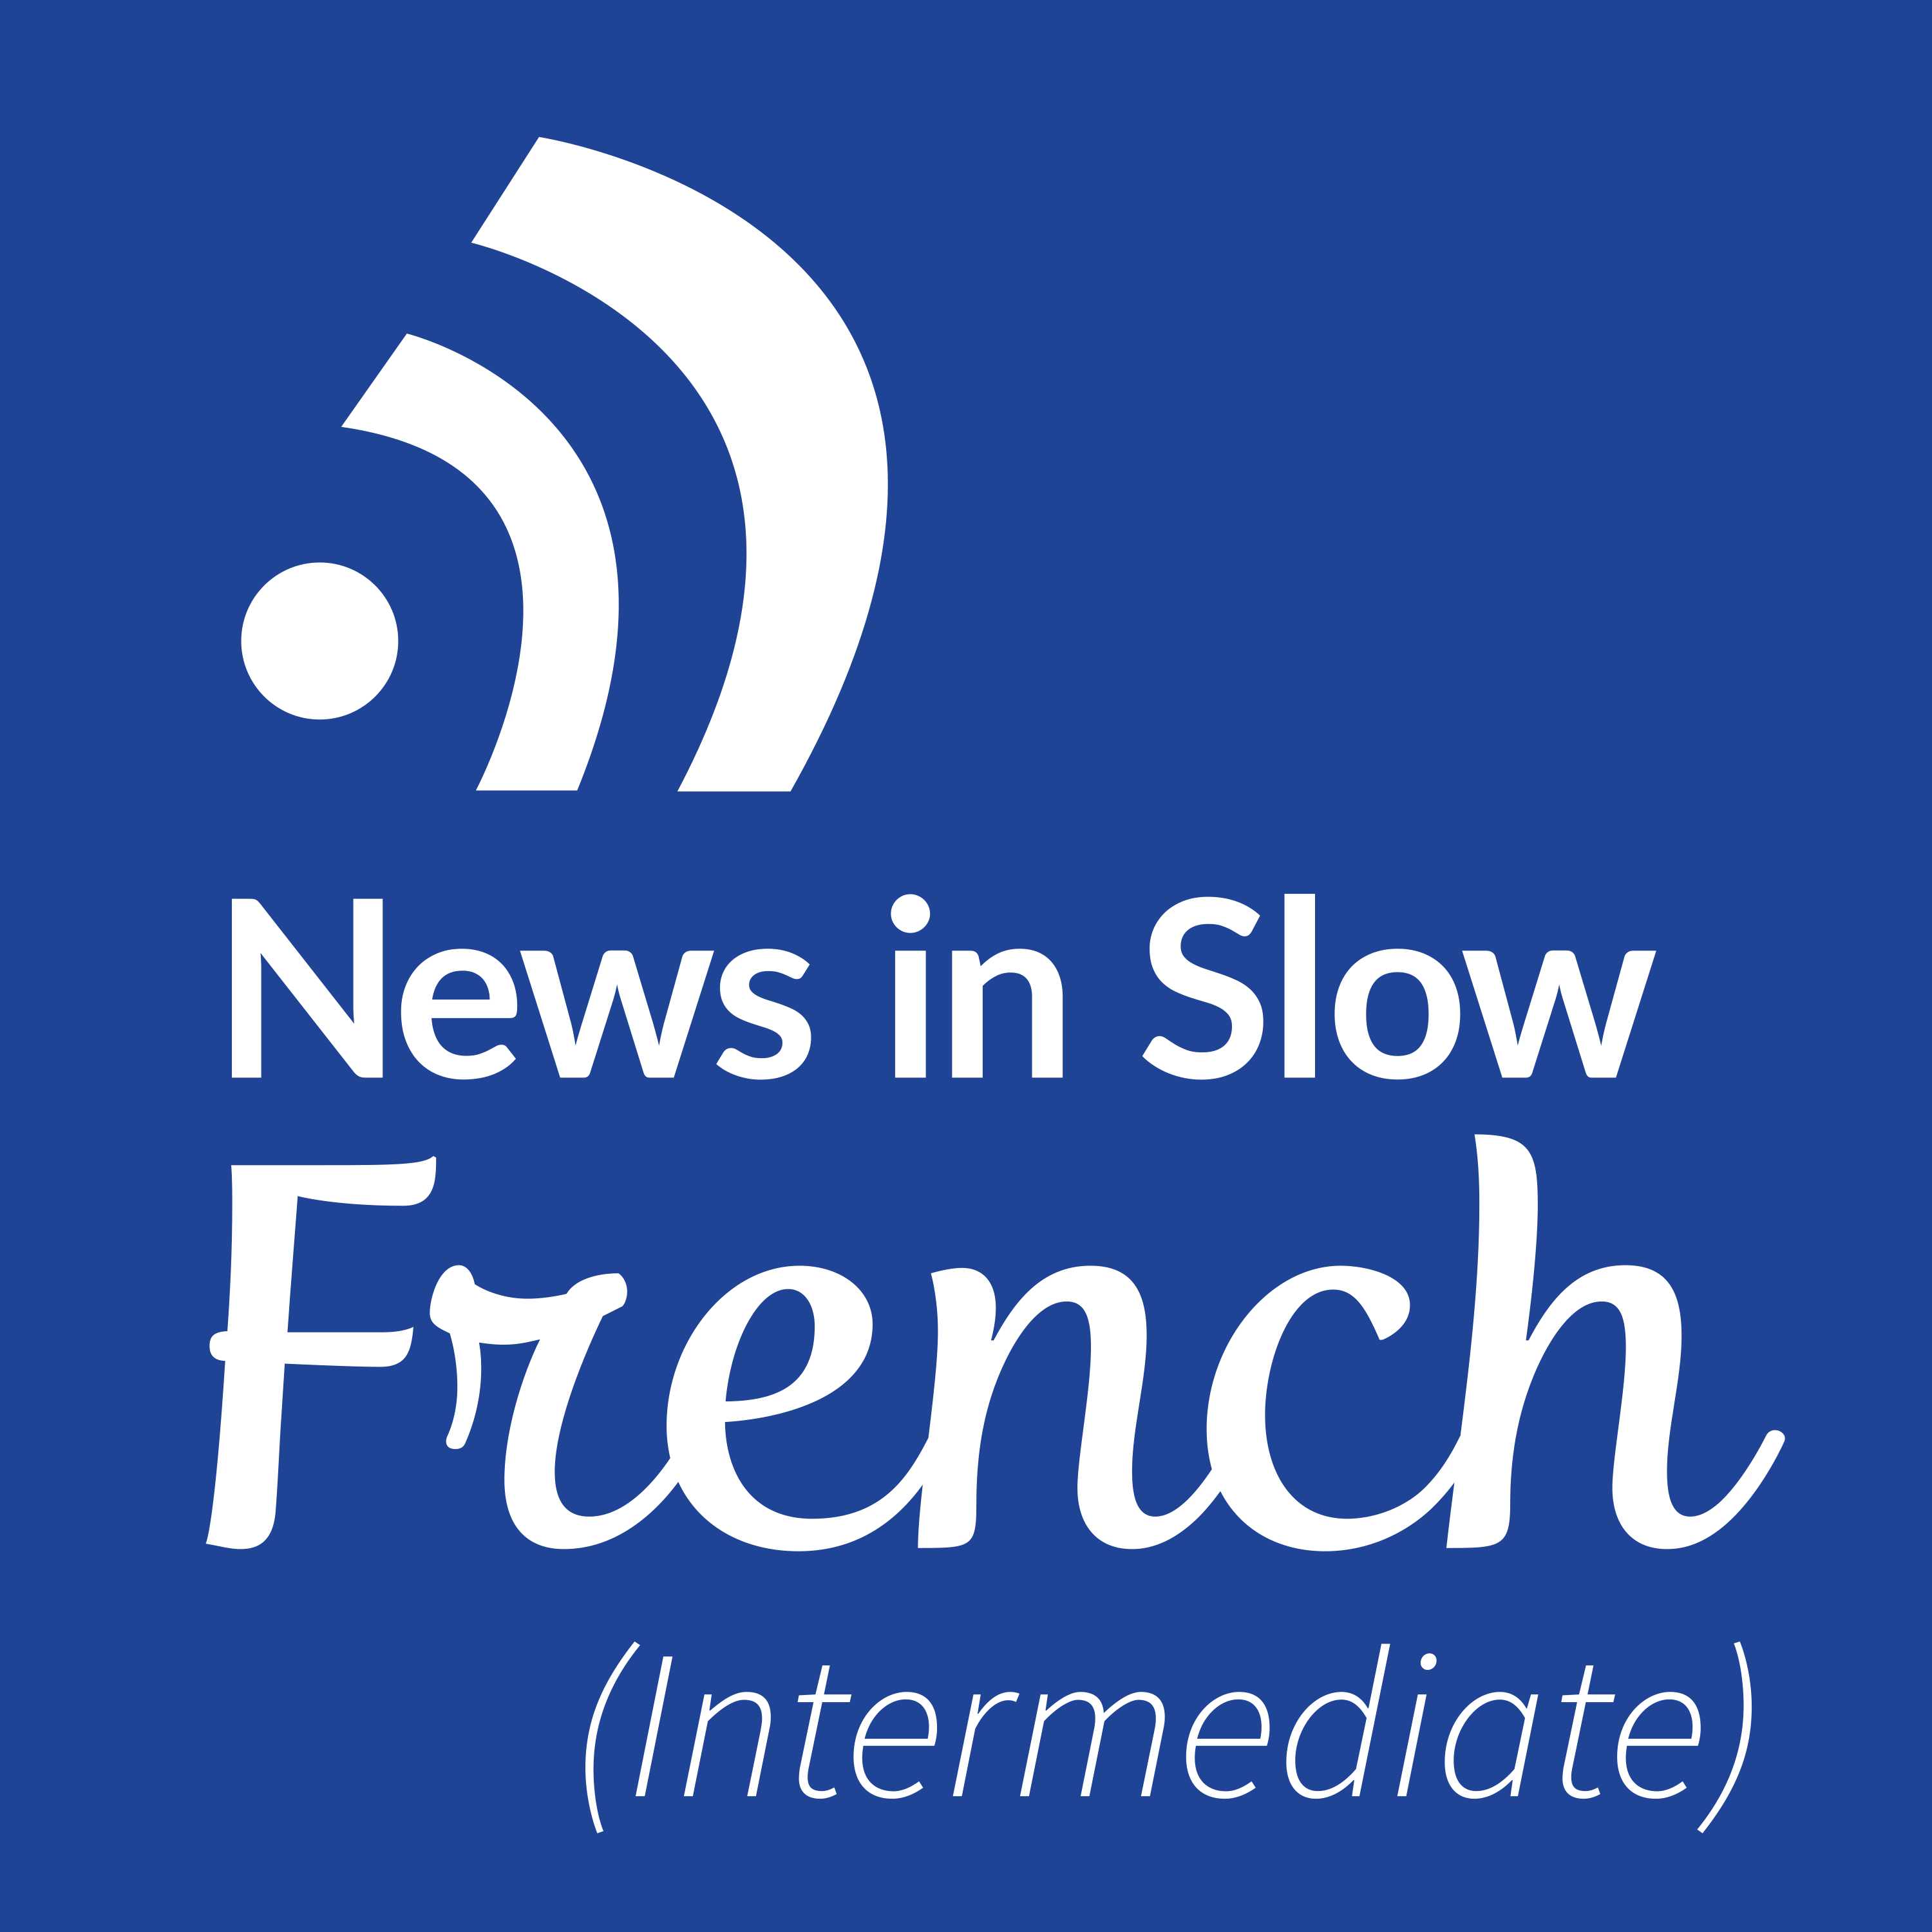 News in Slow French #252 - French conversation about current events